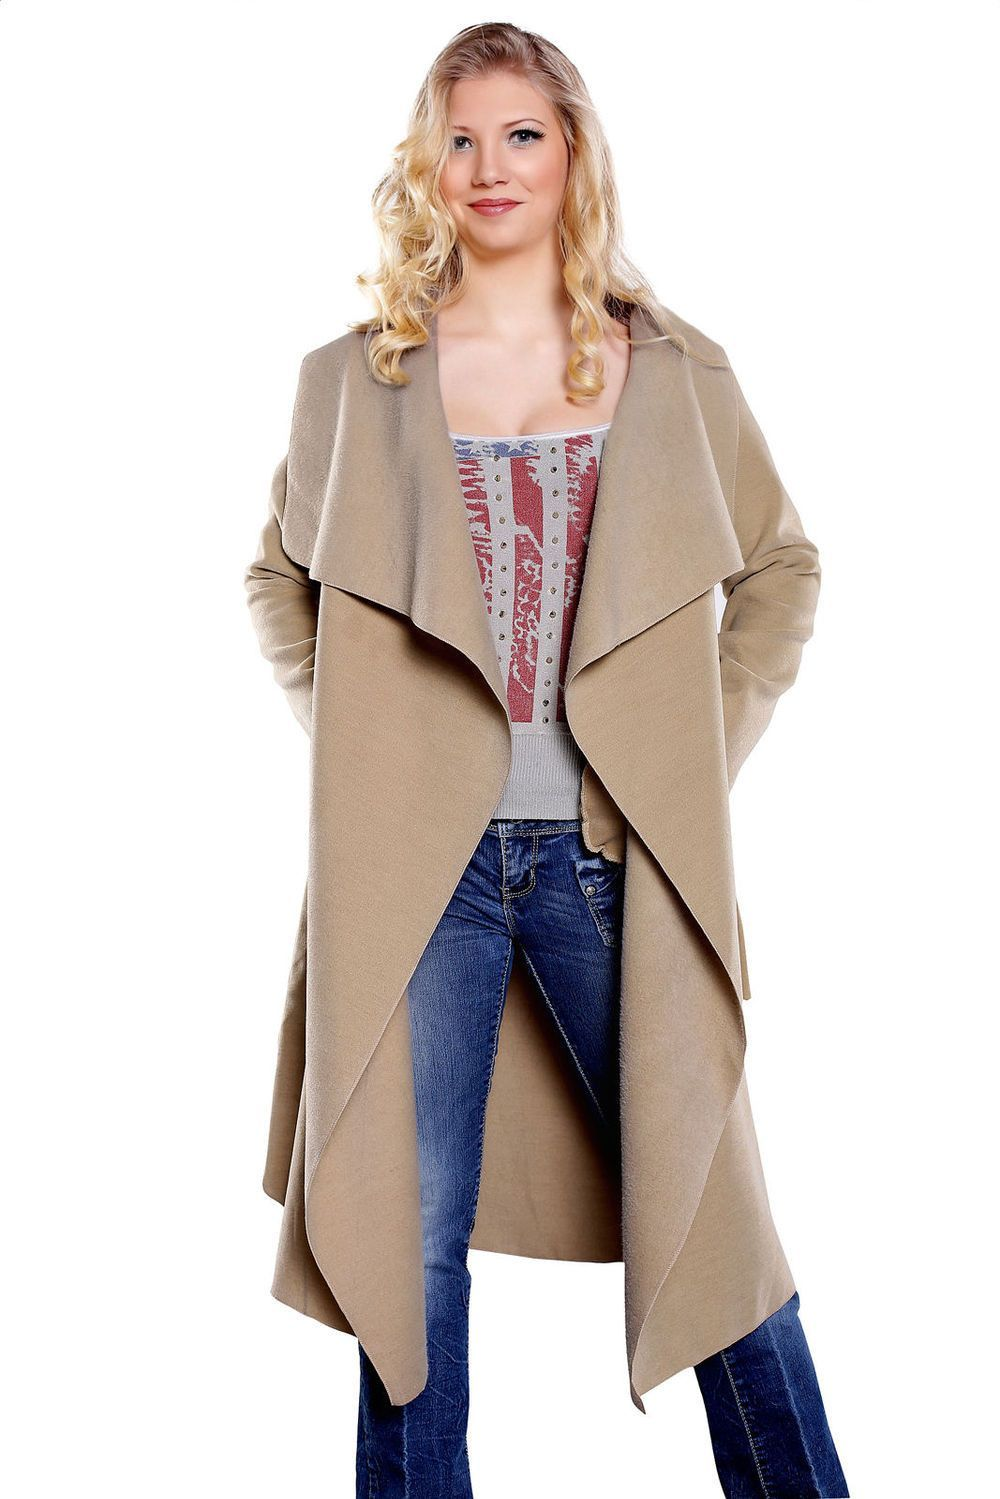 Livelys Blake fashionable jackets pictures